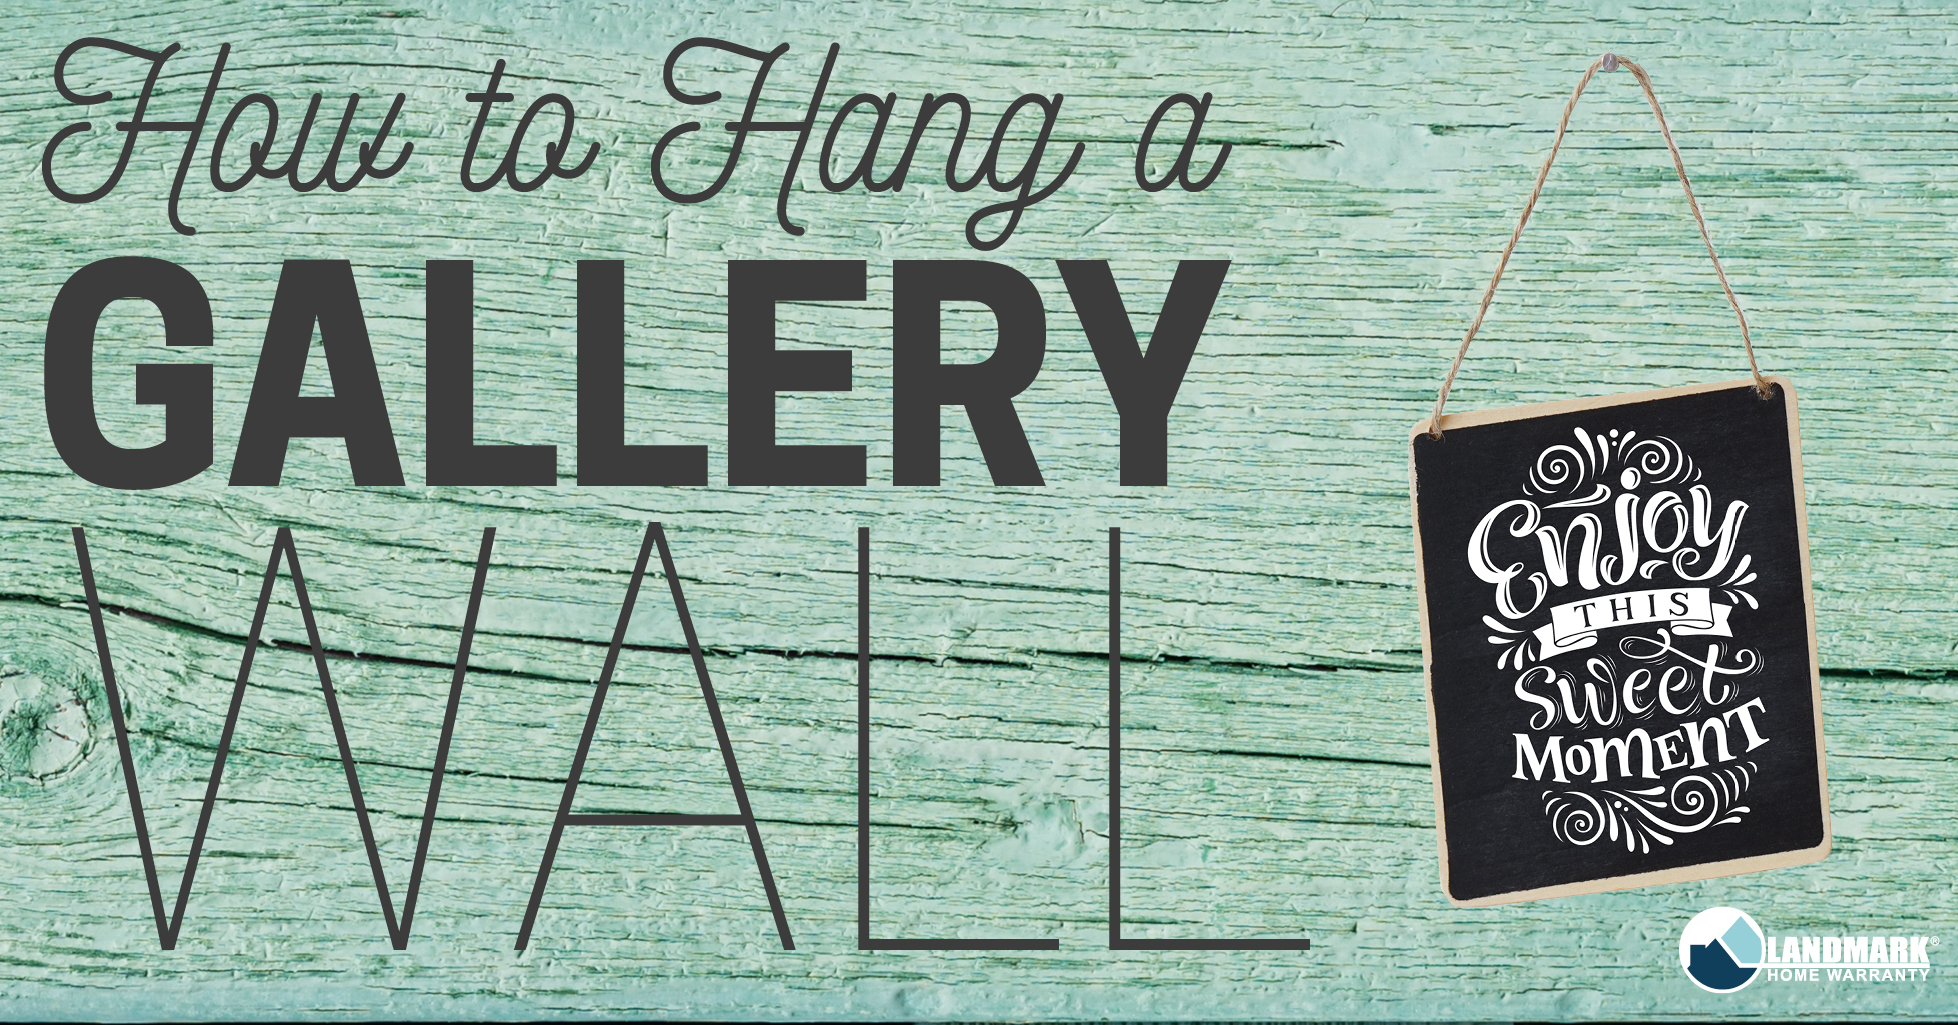 Hanging a gallery wall can be so easy using this tutorial!